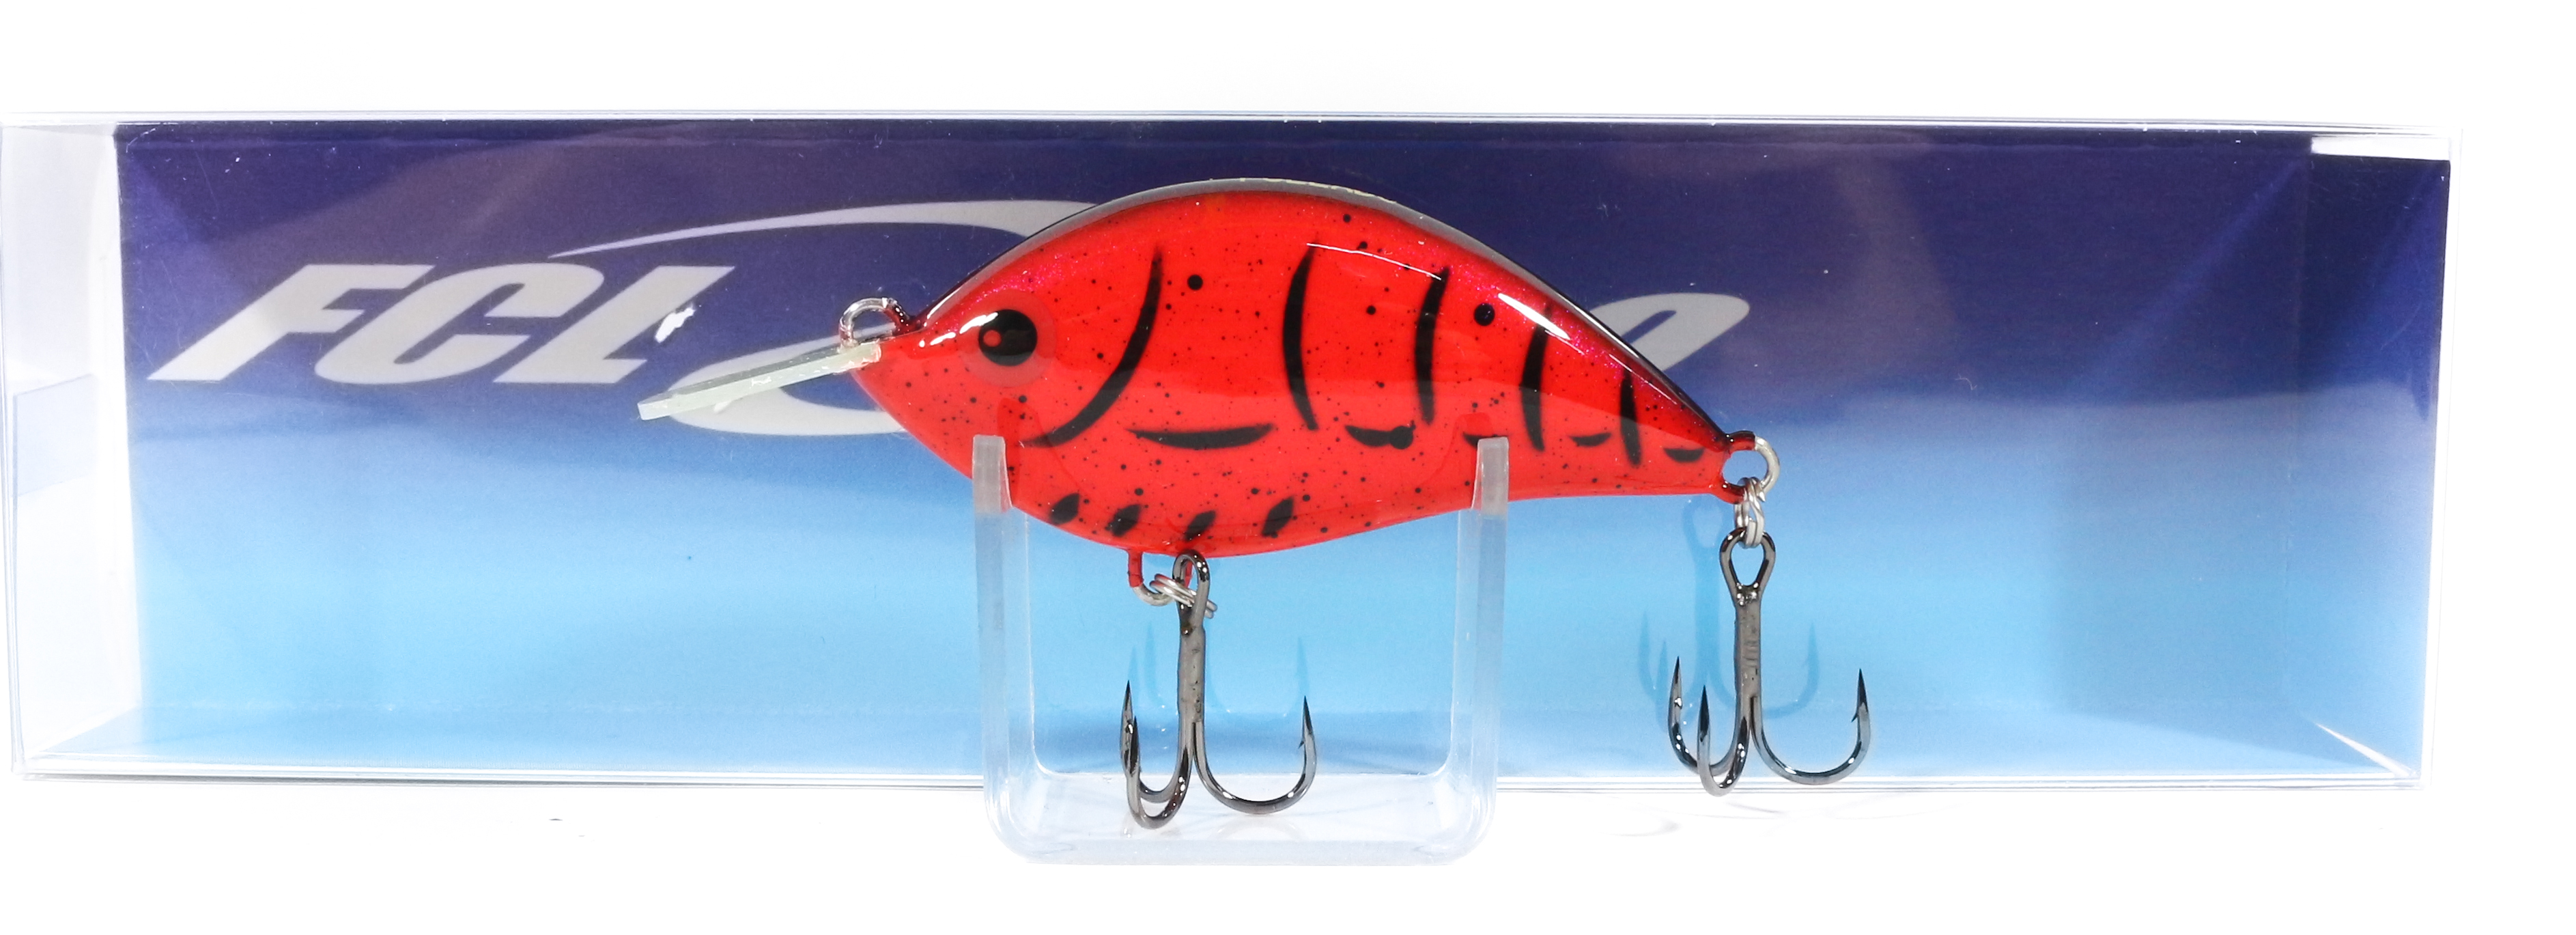 FCL Labo Lure TKC 53 Floating Lure RC (3771)